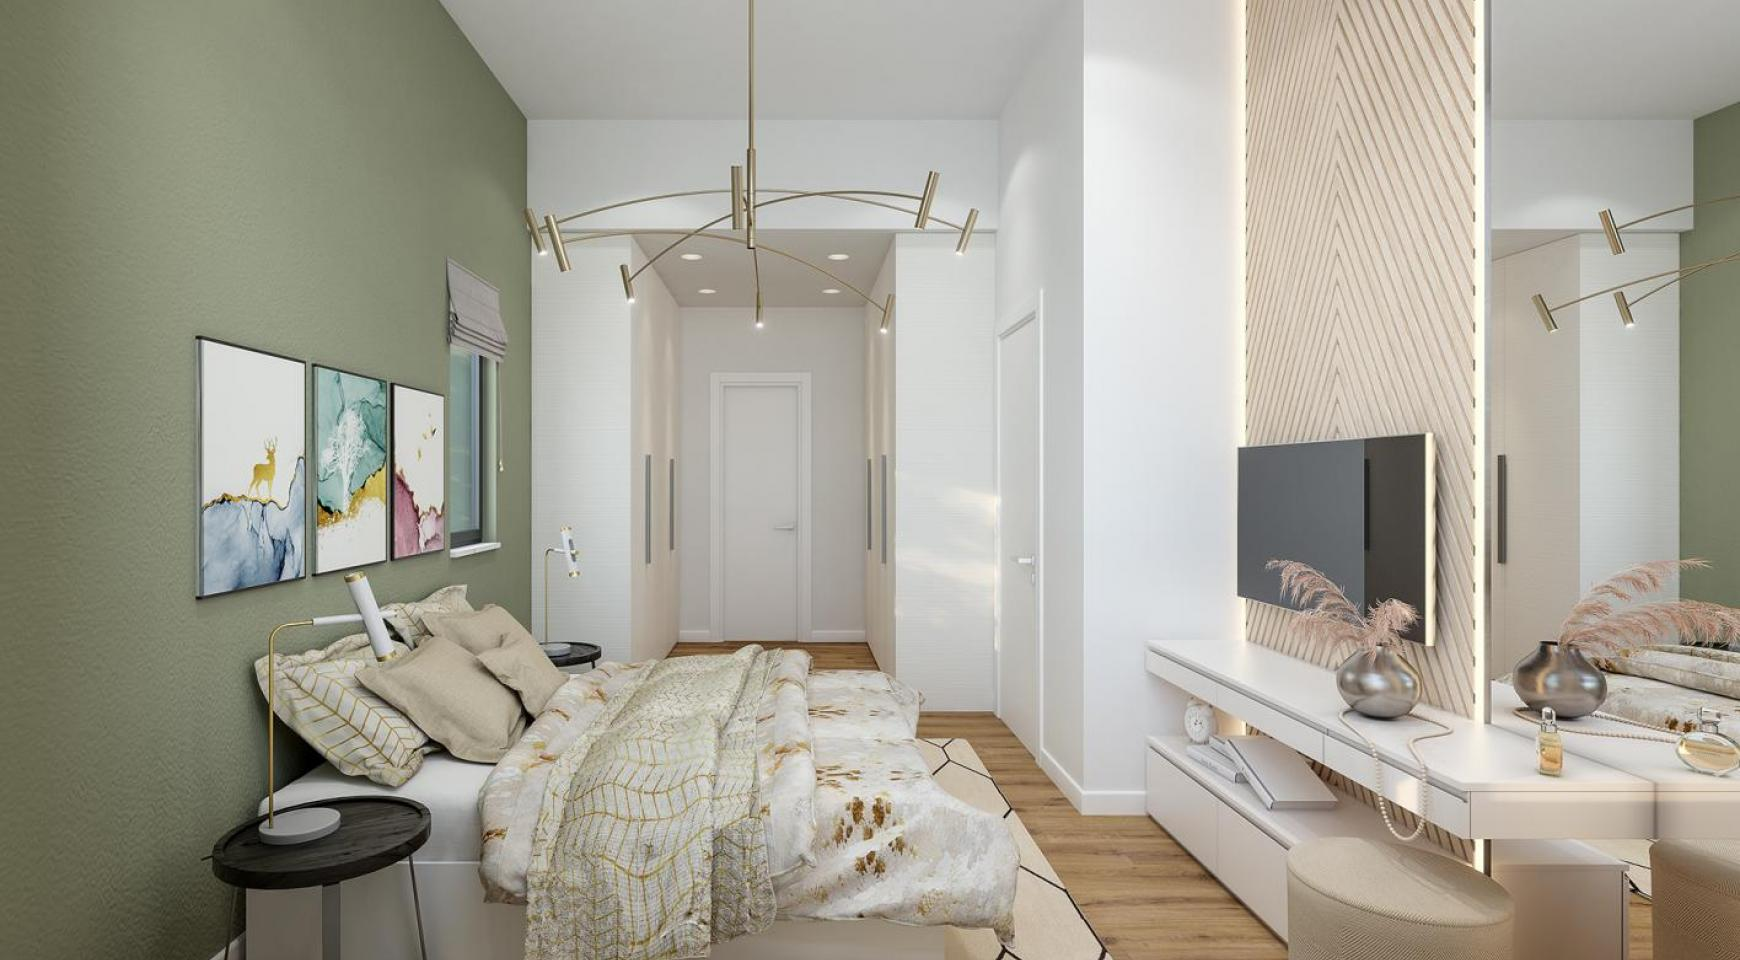 Urban City Residences, Block B. New Spacious 2 Bedroom Apartment 302 in the City Centre - 4